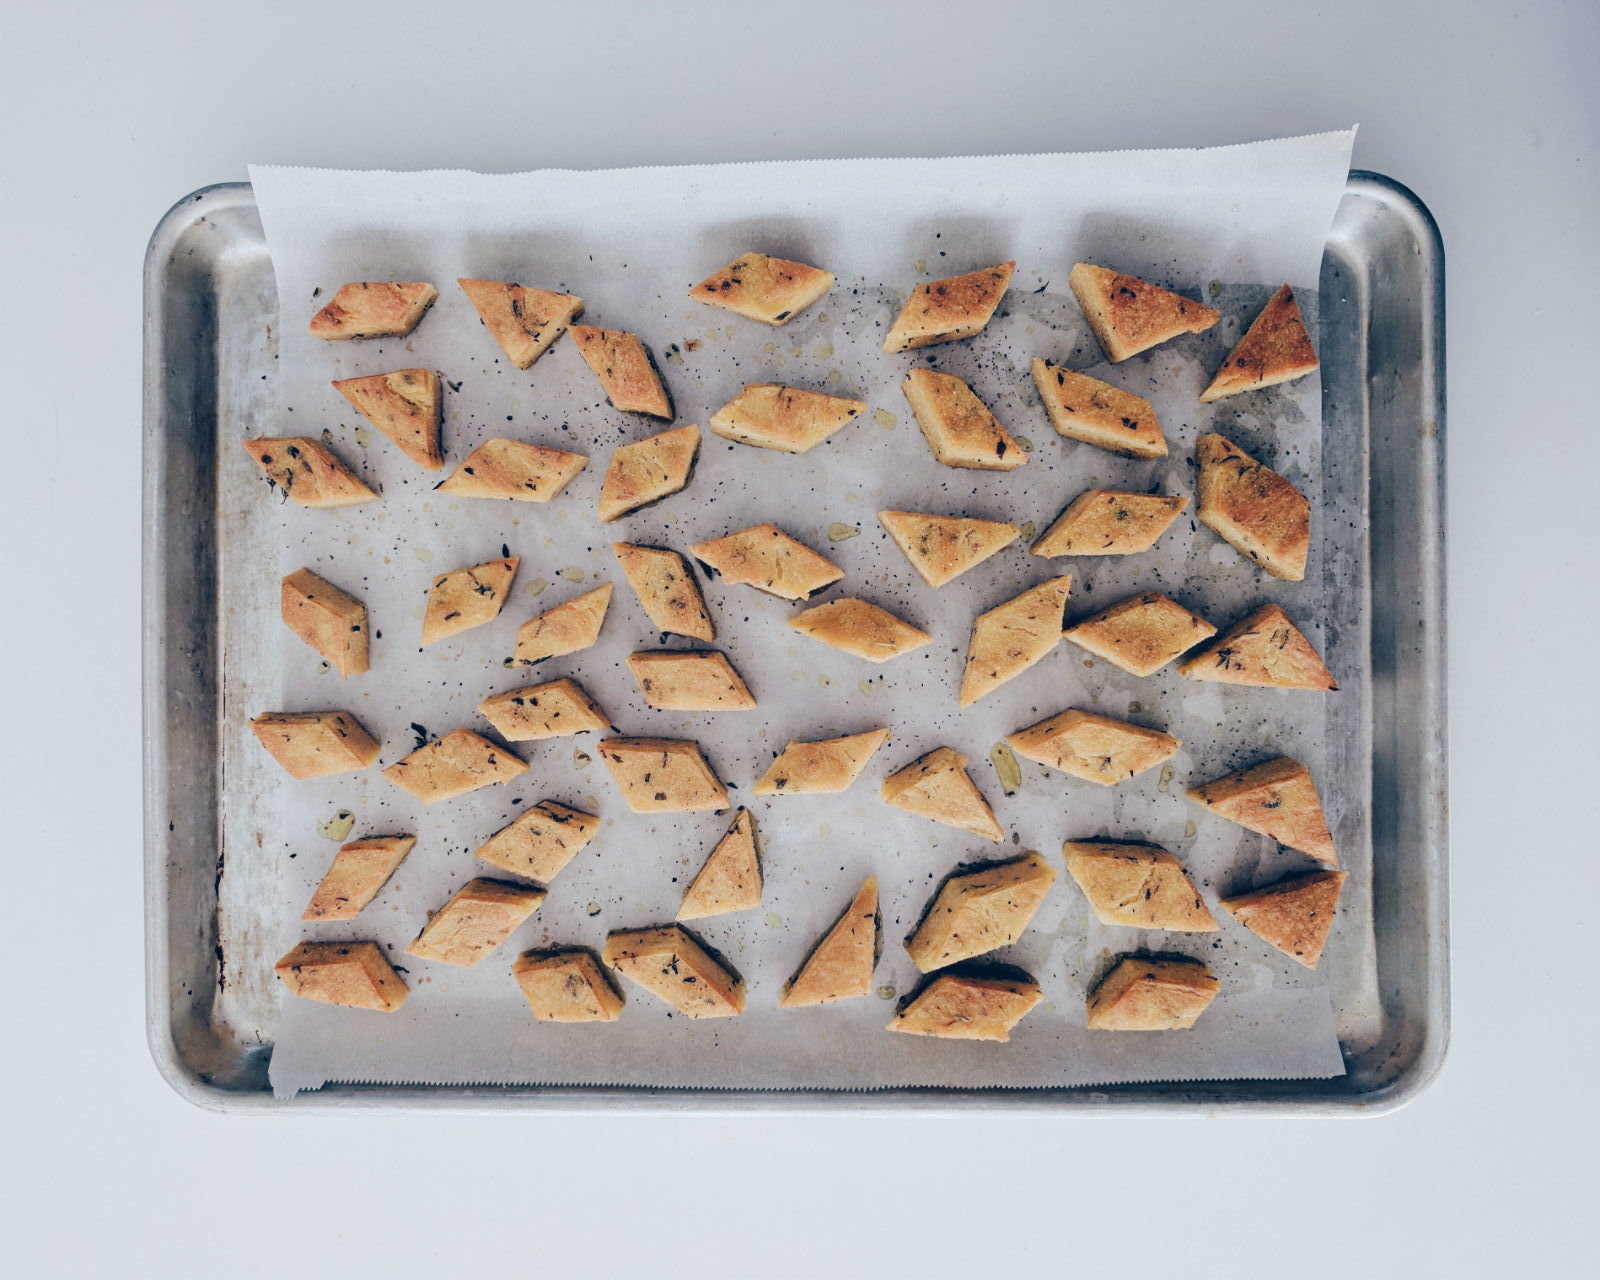 Panissa, just out of the oven. The perfect appetizer, snack, or main dish.